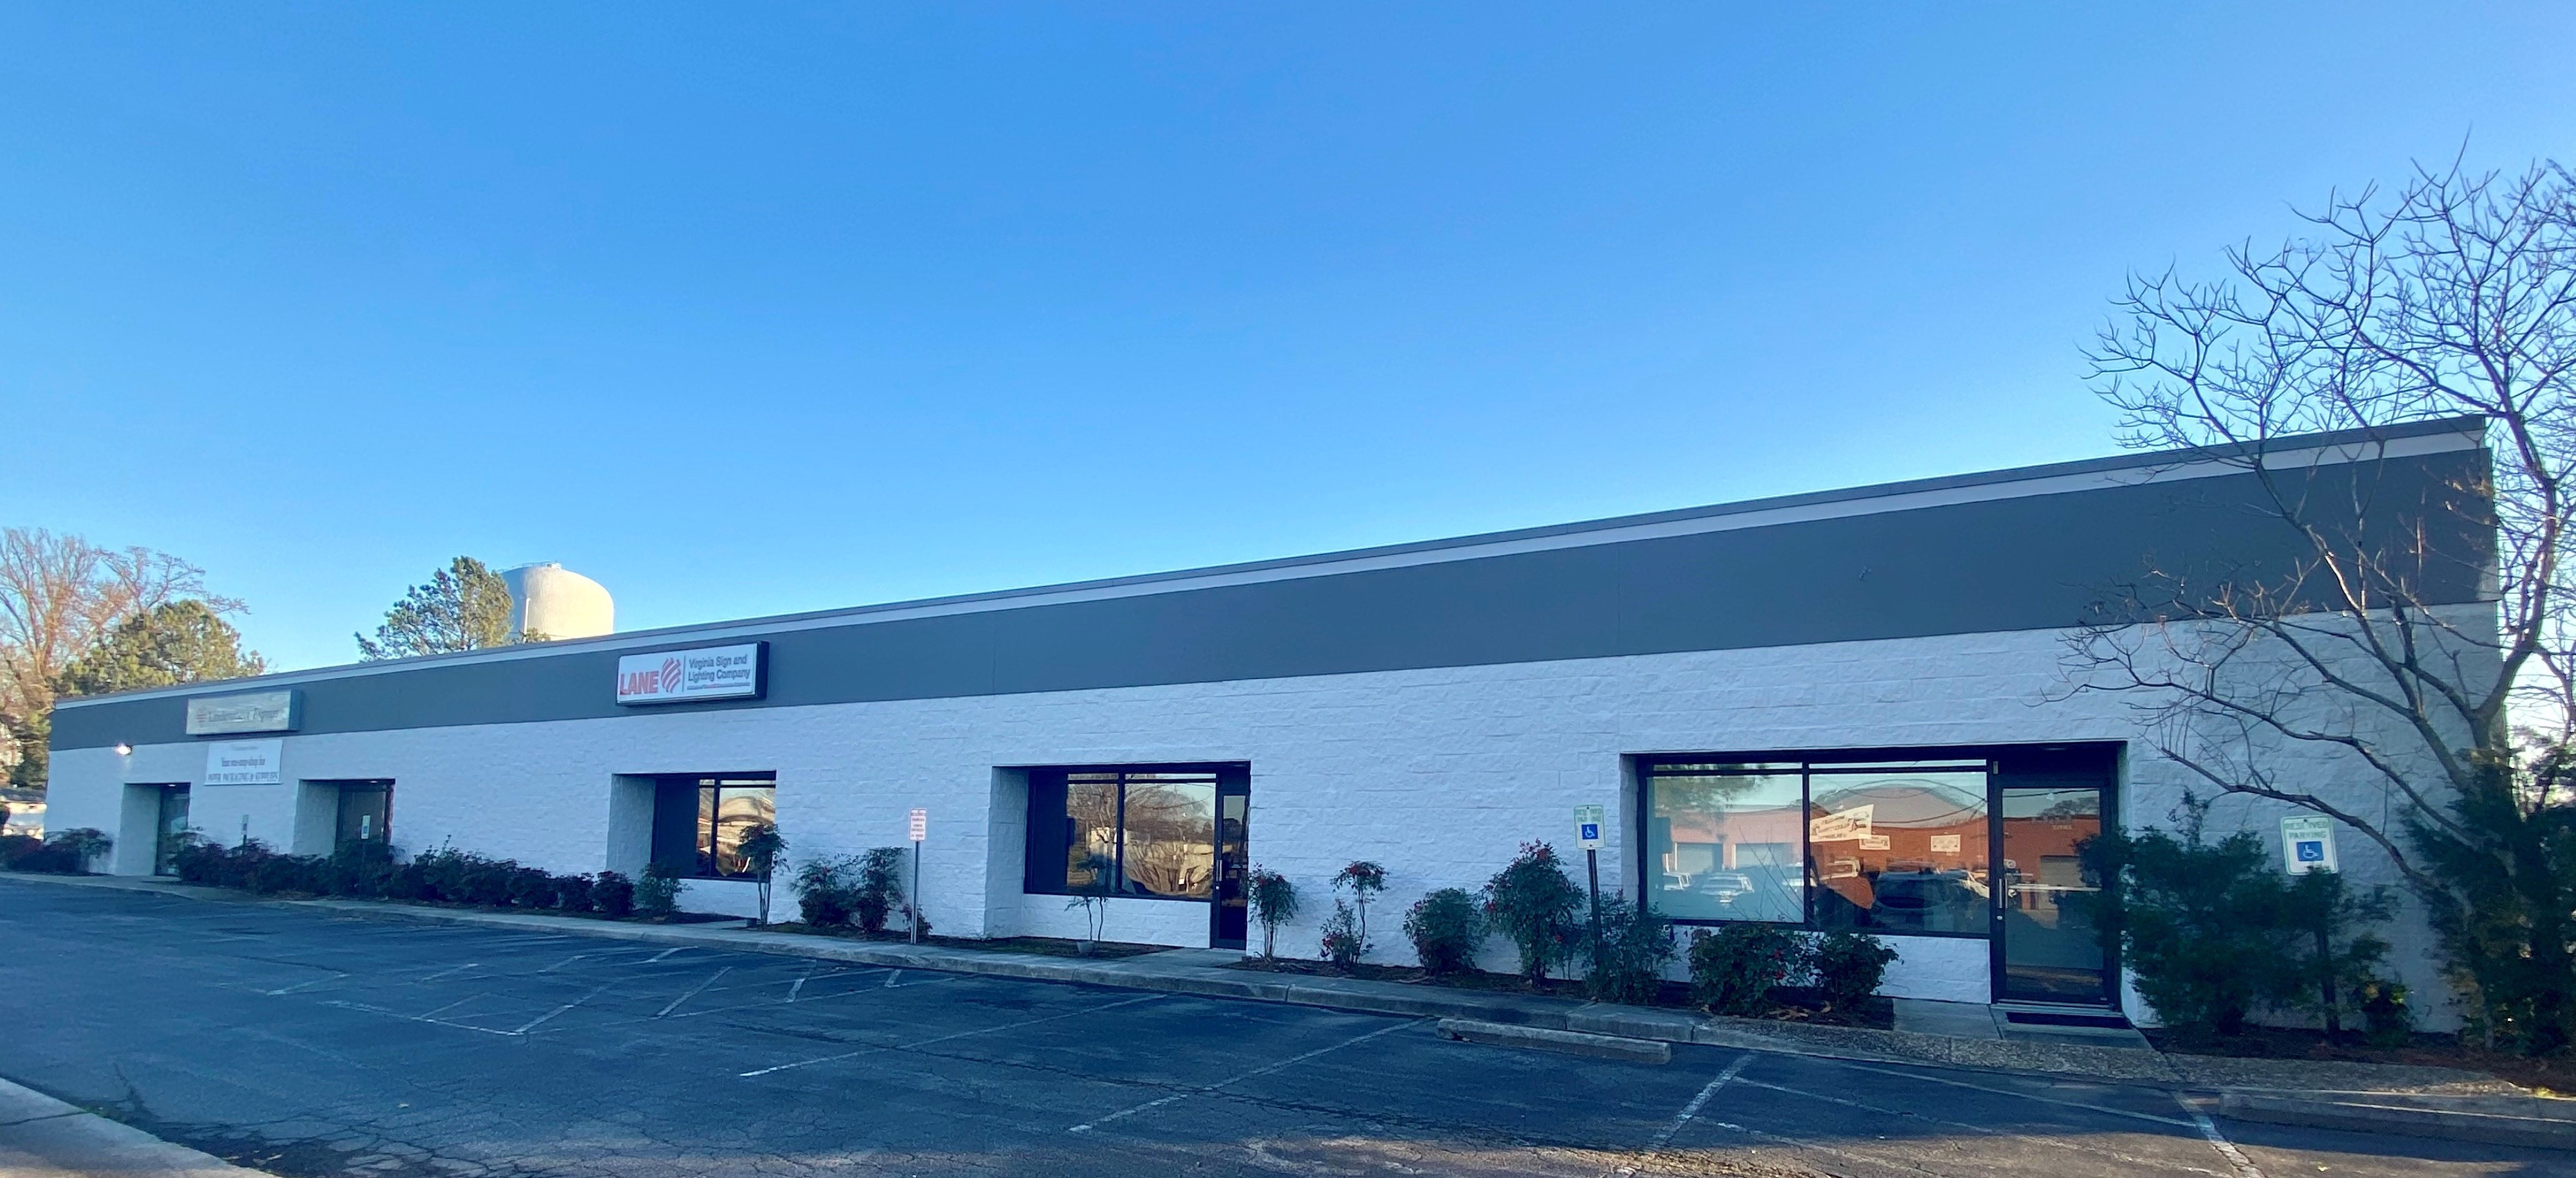 Colliers Announces Sale of 4901 Cleveland St. Virginia Beach